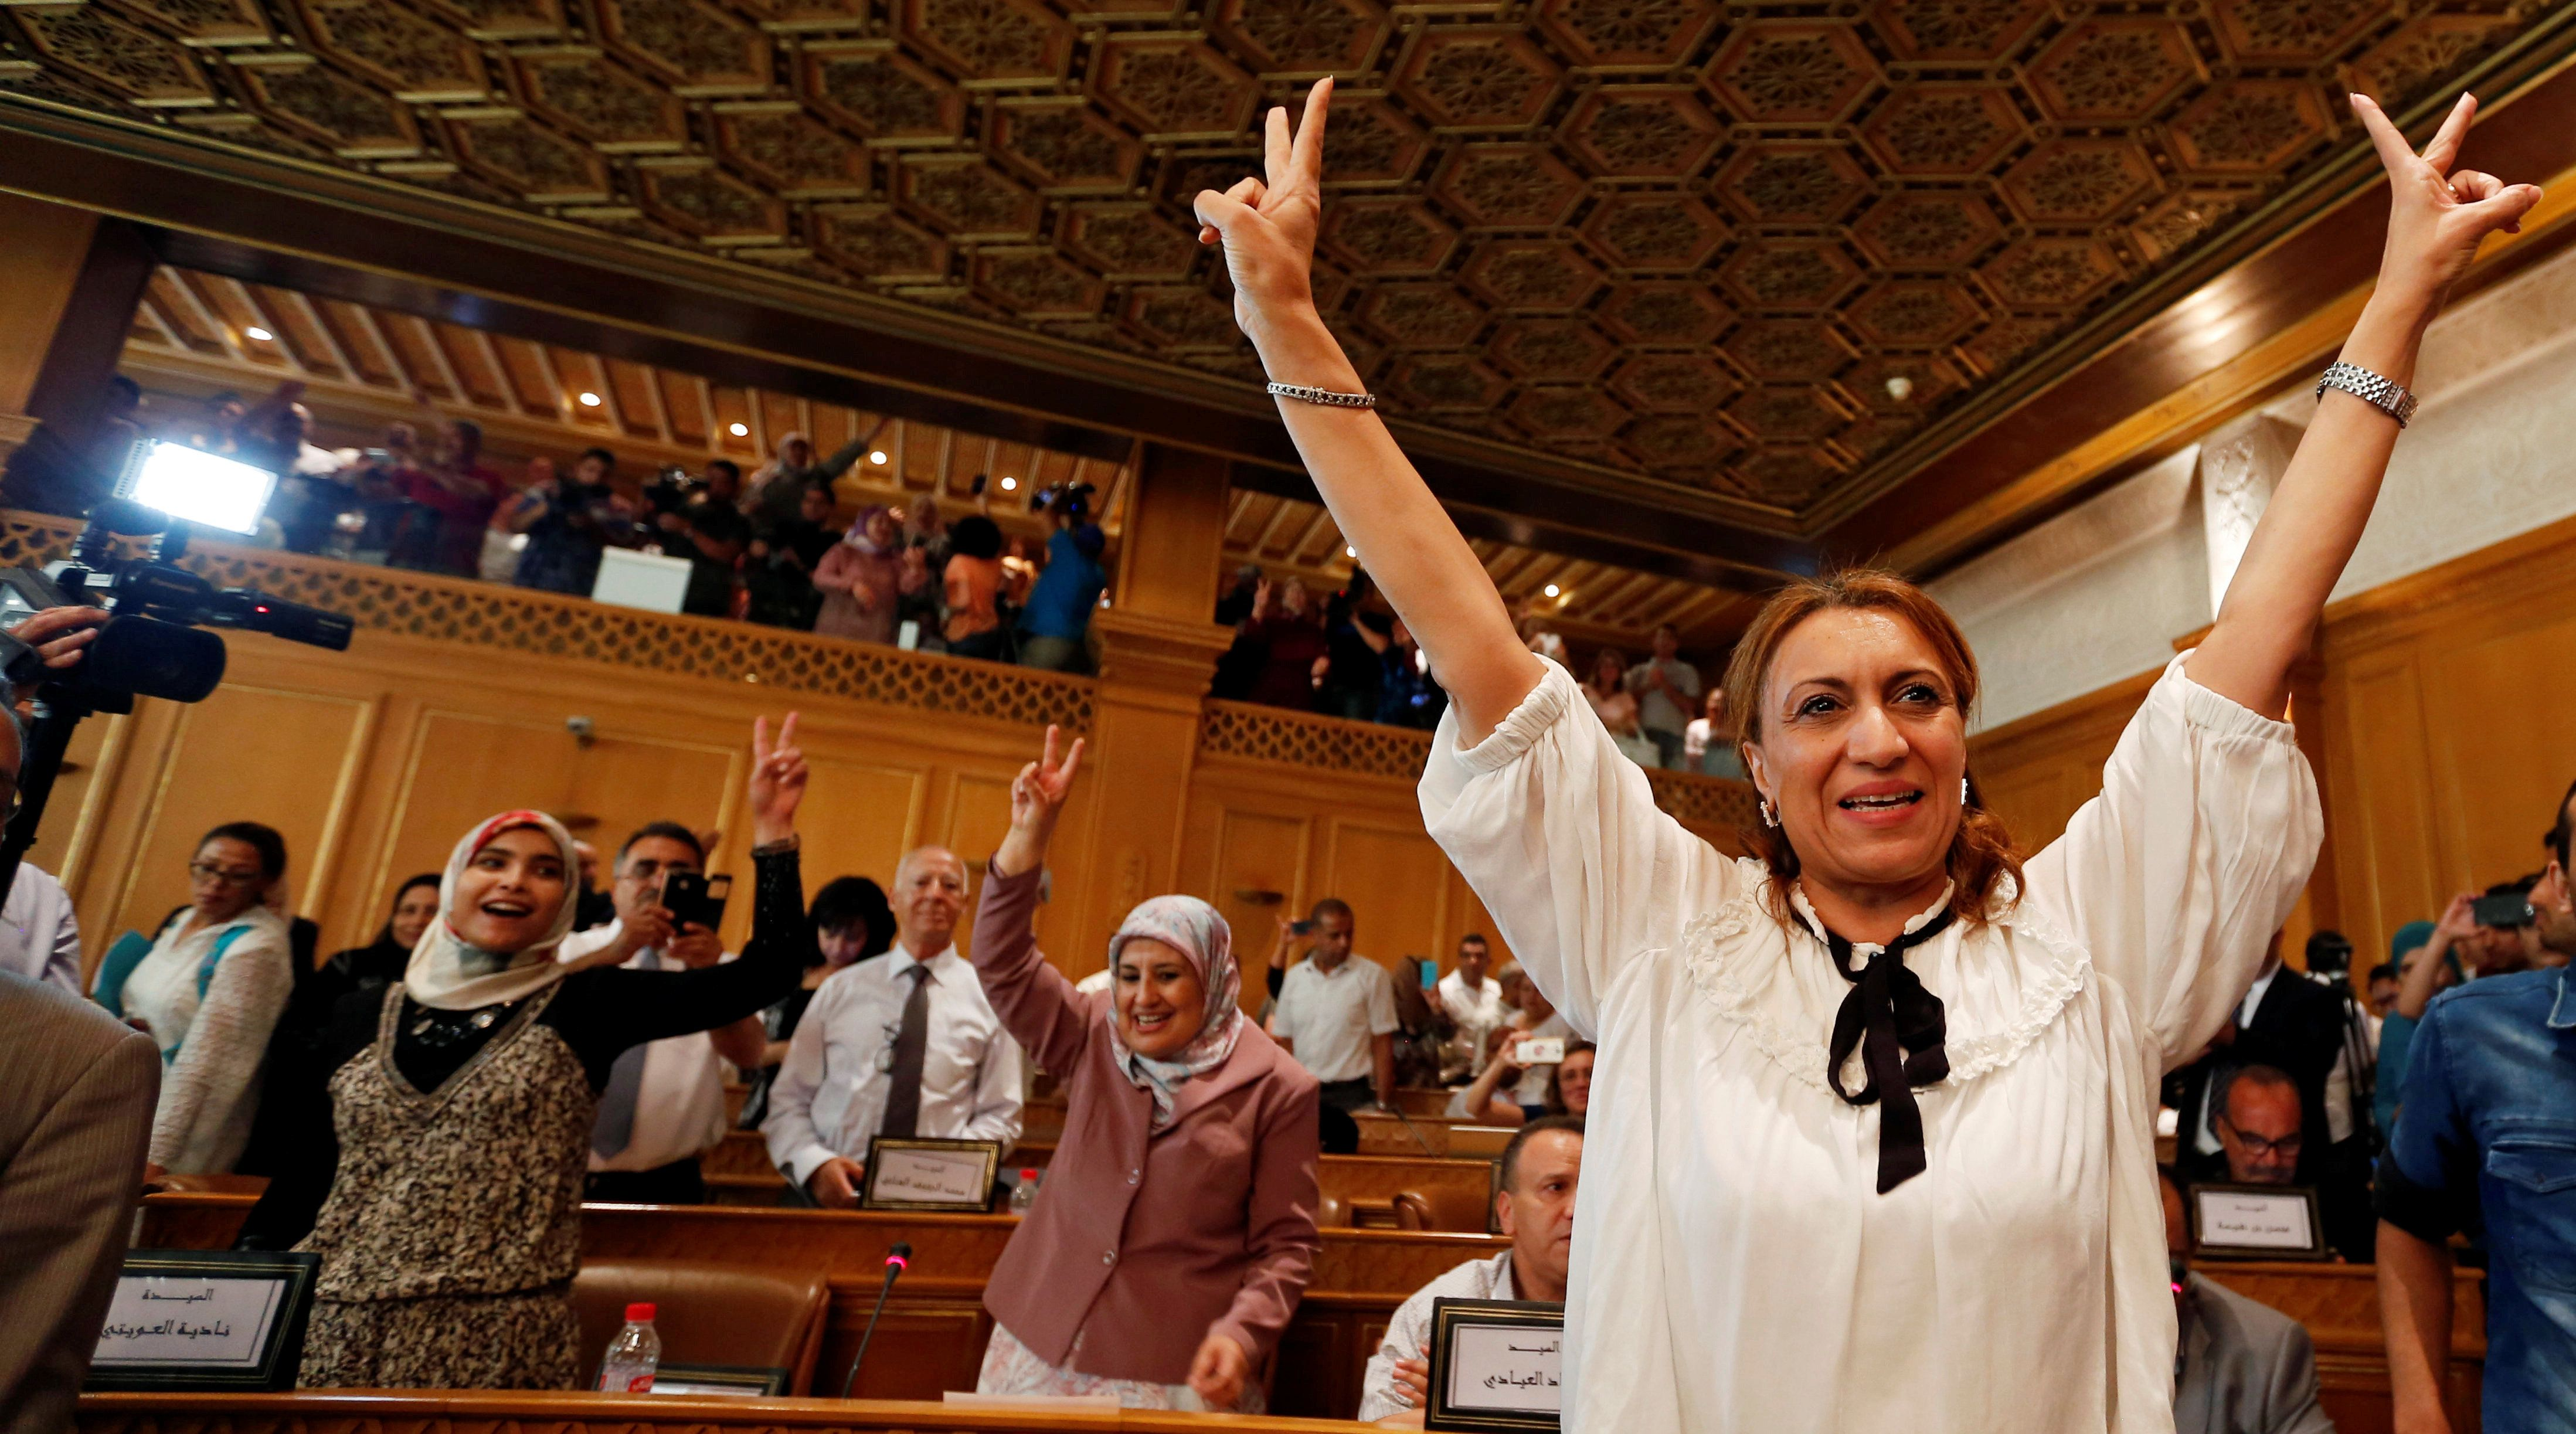 Souad Abderrahim, a candidate of the Islamist Ennahda party celebrates after being elected mayor of the city of Tunis, in Tunis, Tunisia July 3, 2018. She is the first Tunisian woman to hold the post. REUTERS/Zoubeir Souissi